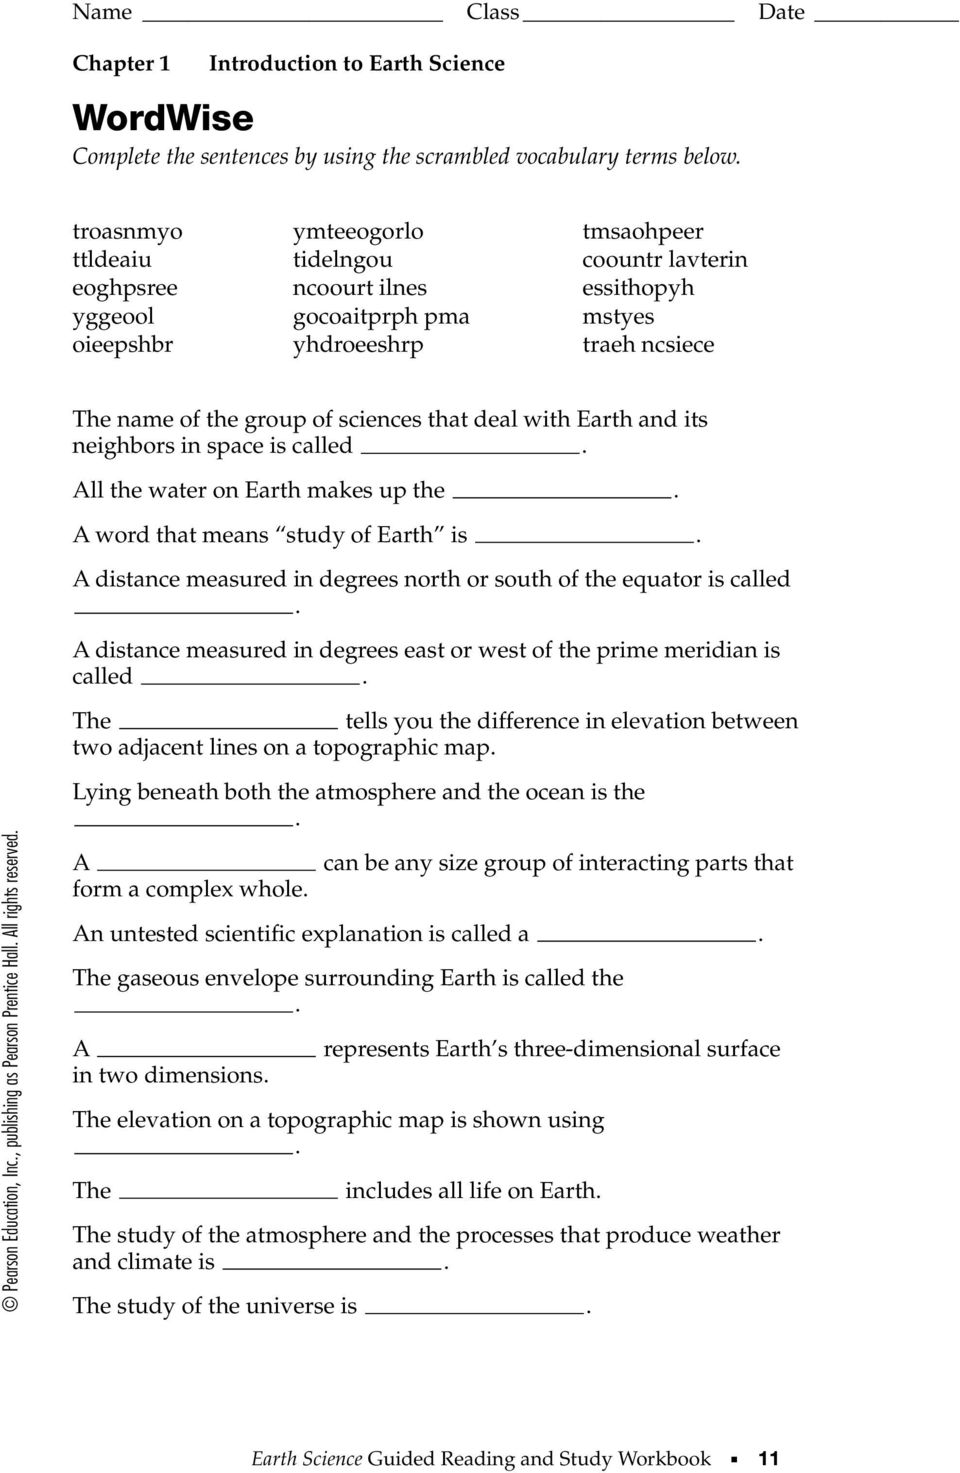 section 1 1 what is earth science this section explains what earth rh docplayer net earth science guided reading and study workbook answers chapter 24.1 earth science guided reading and study workbook answers chapter 4